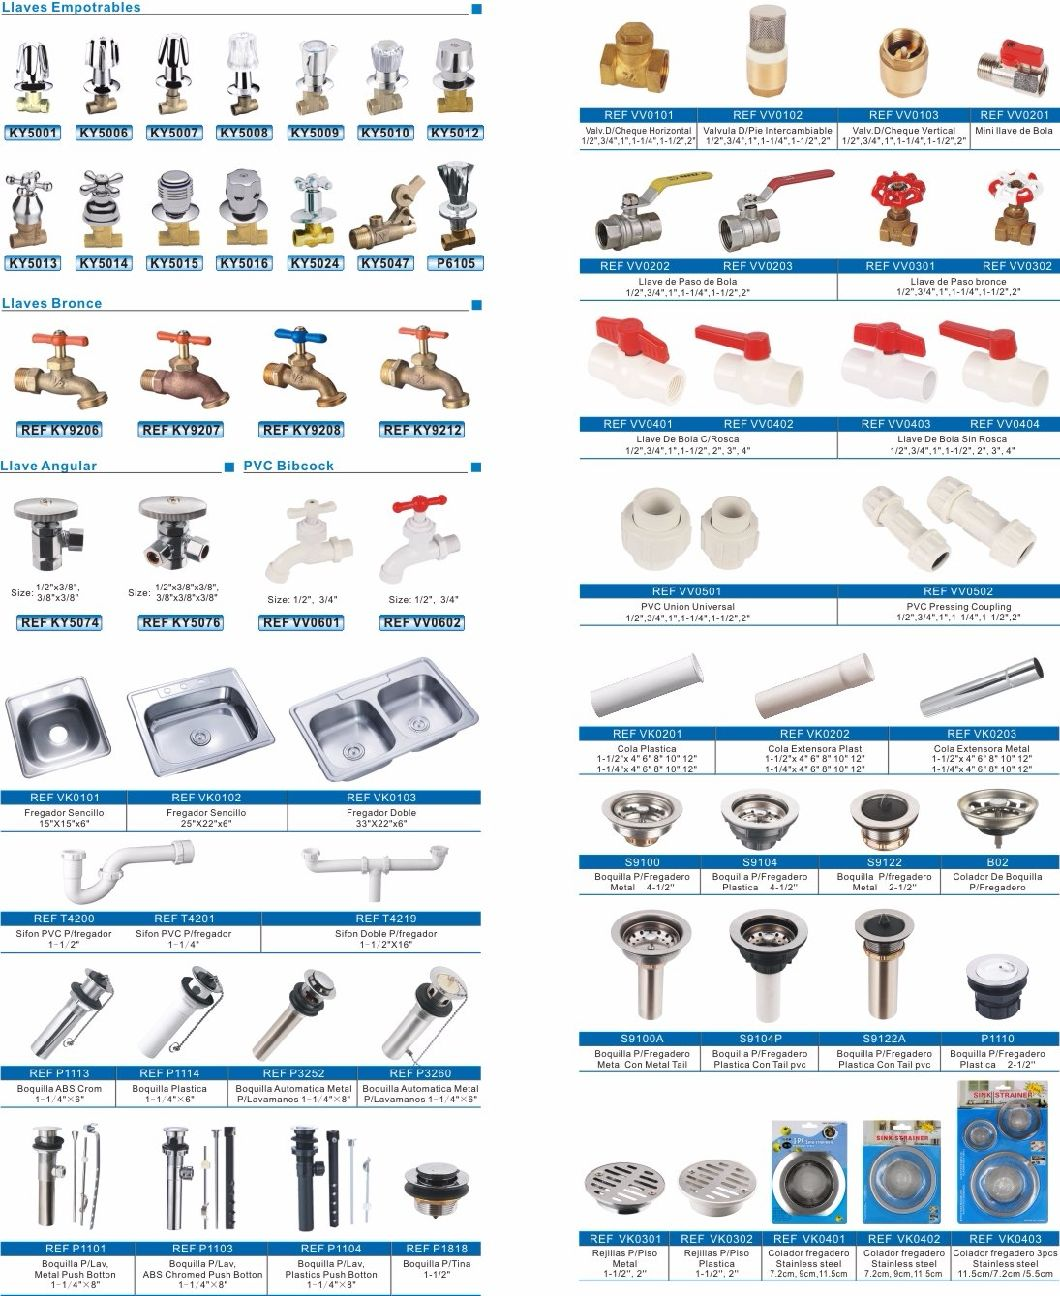 Waste for Bathtub Pop-up Drain Automatic Metal Mouthpiece (P1818)